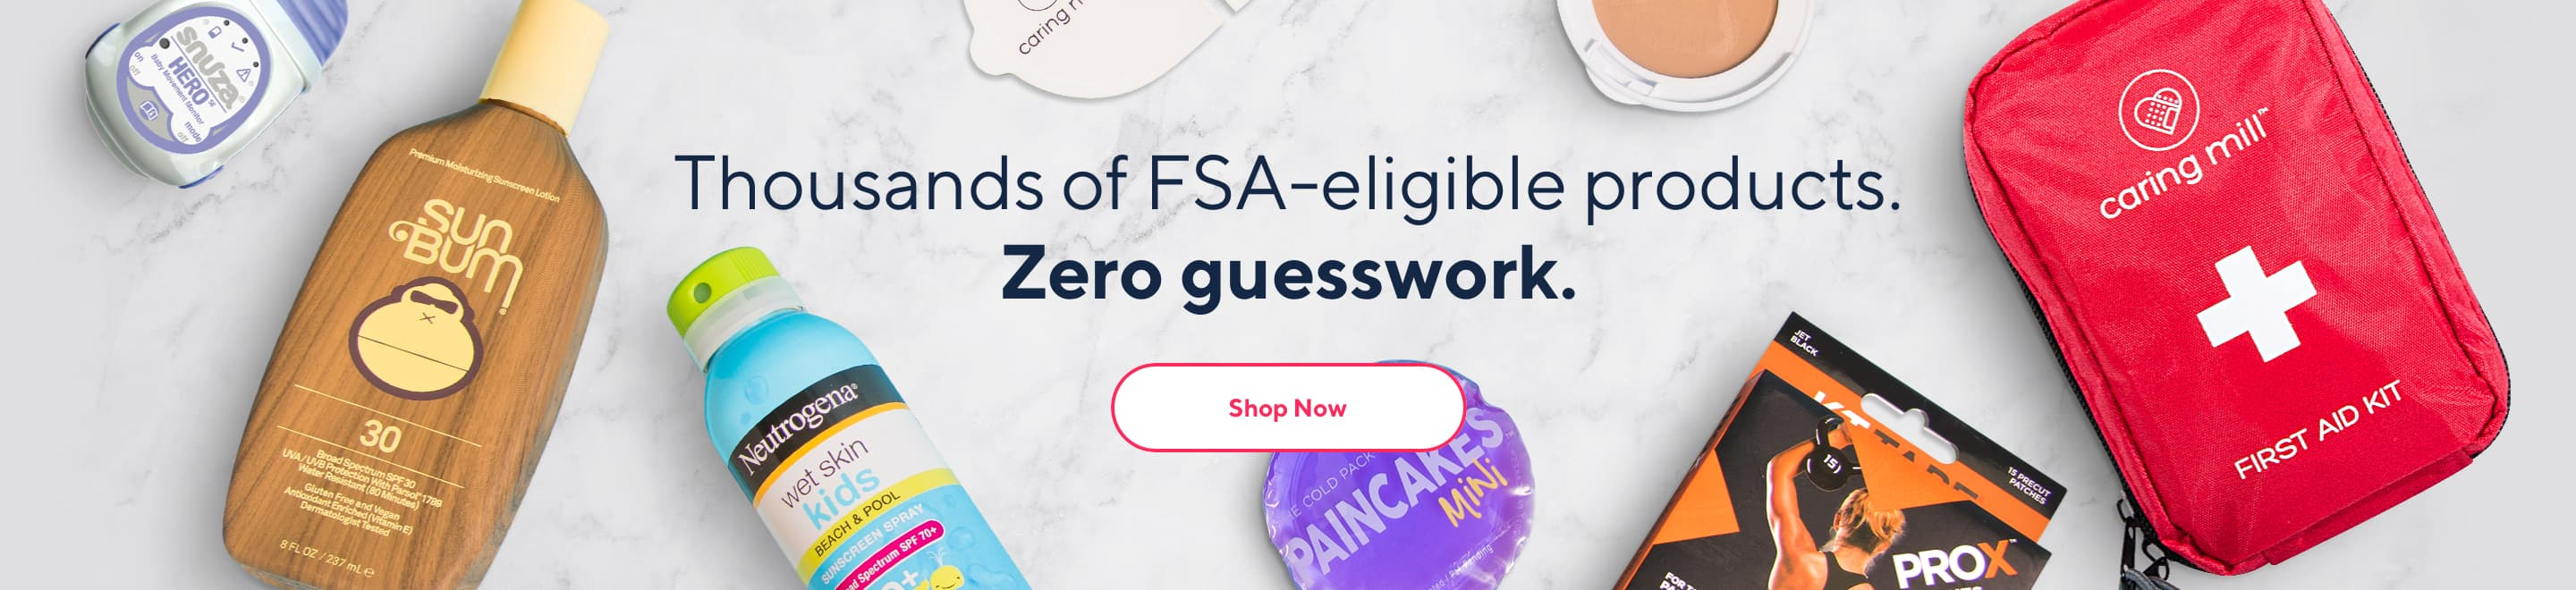 Thousands of FSA-eligible products. Zero guesswork.